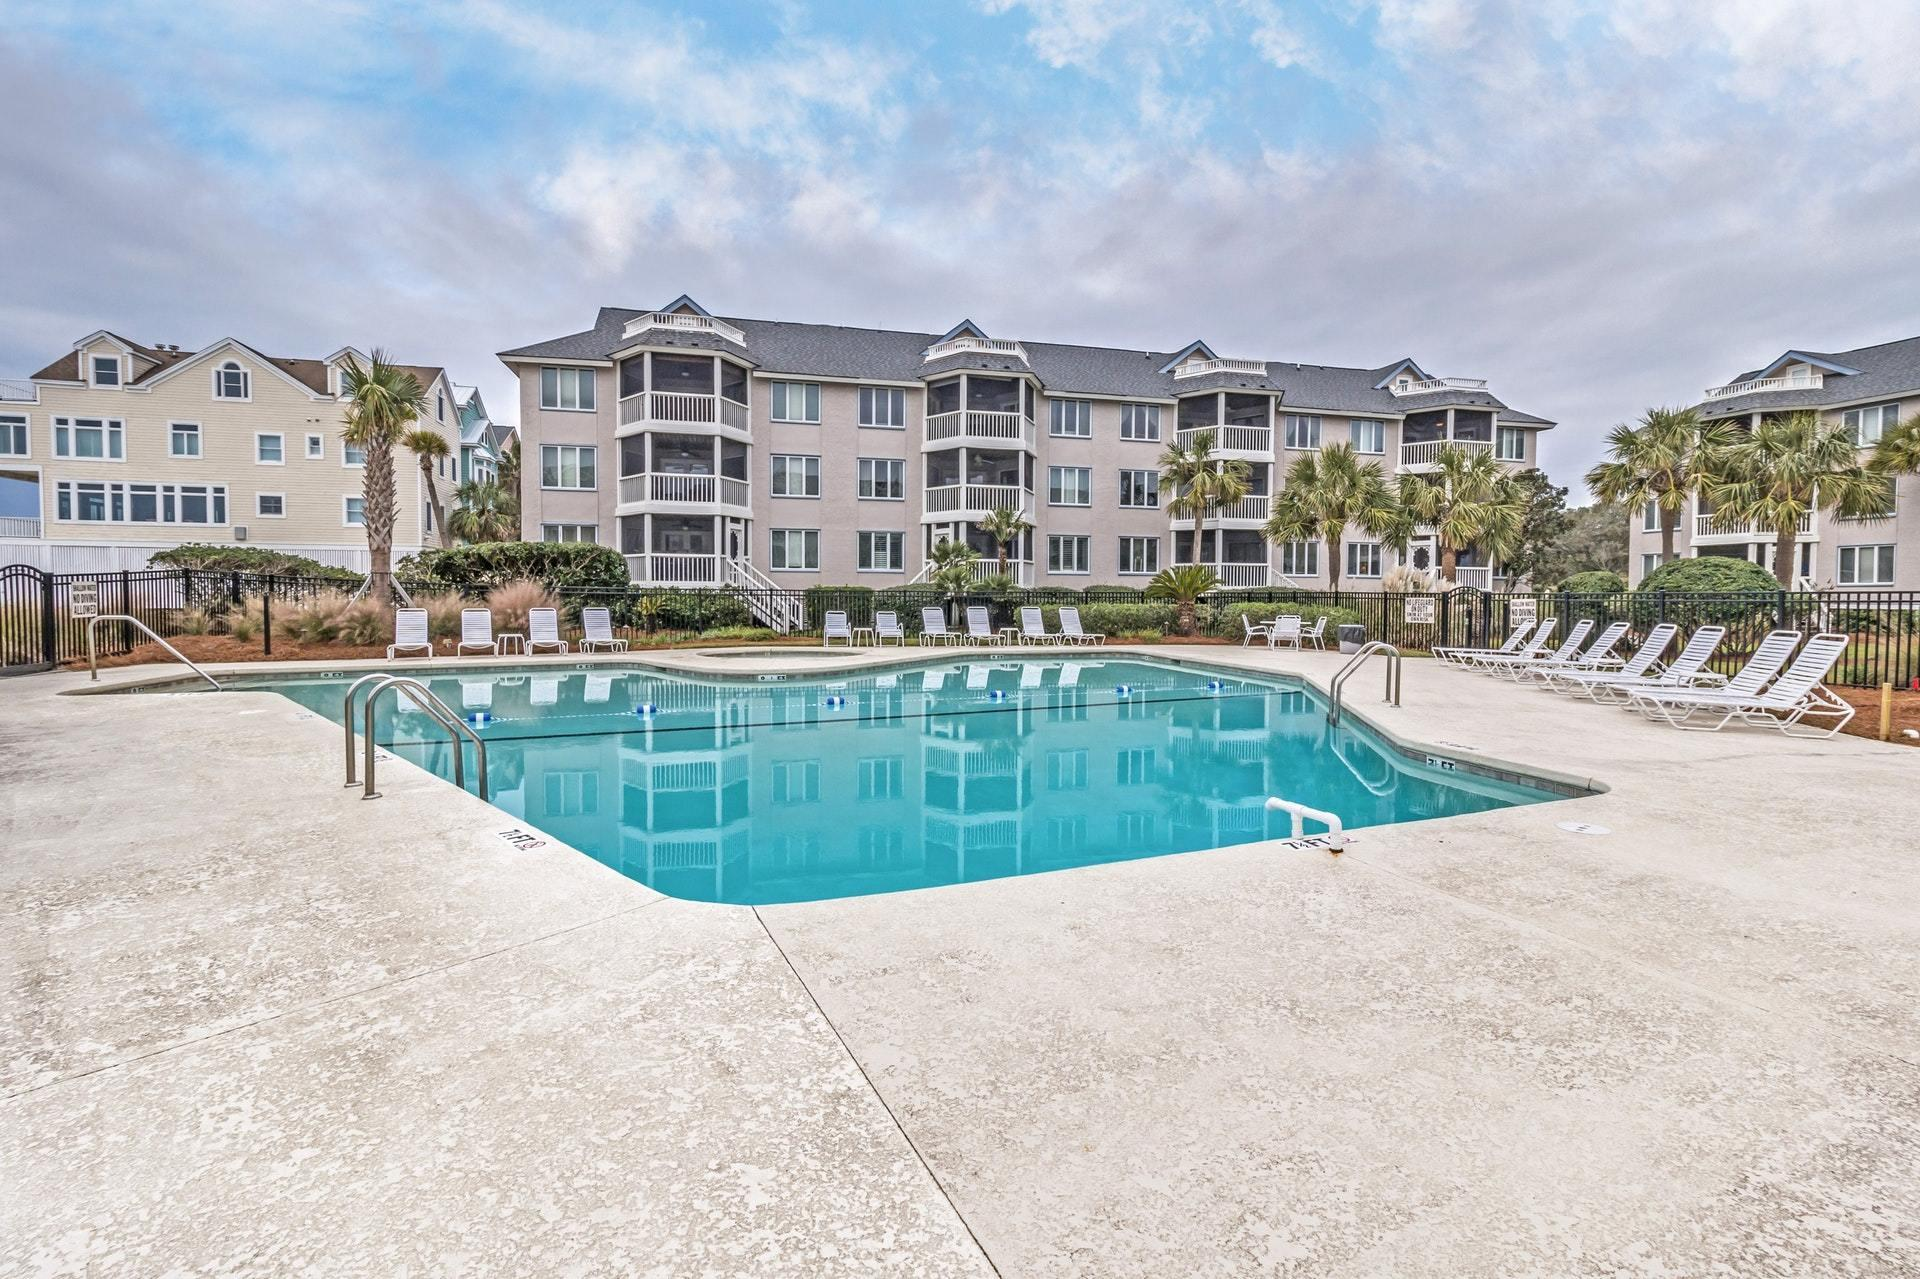 Wild Dunes Resort Homes For Sale - 102 I Tidewater, Isle of Palms, SC - 7